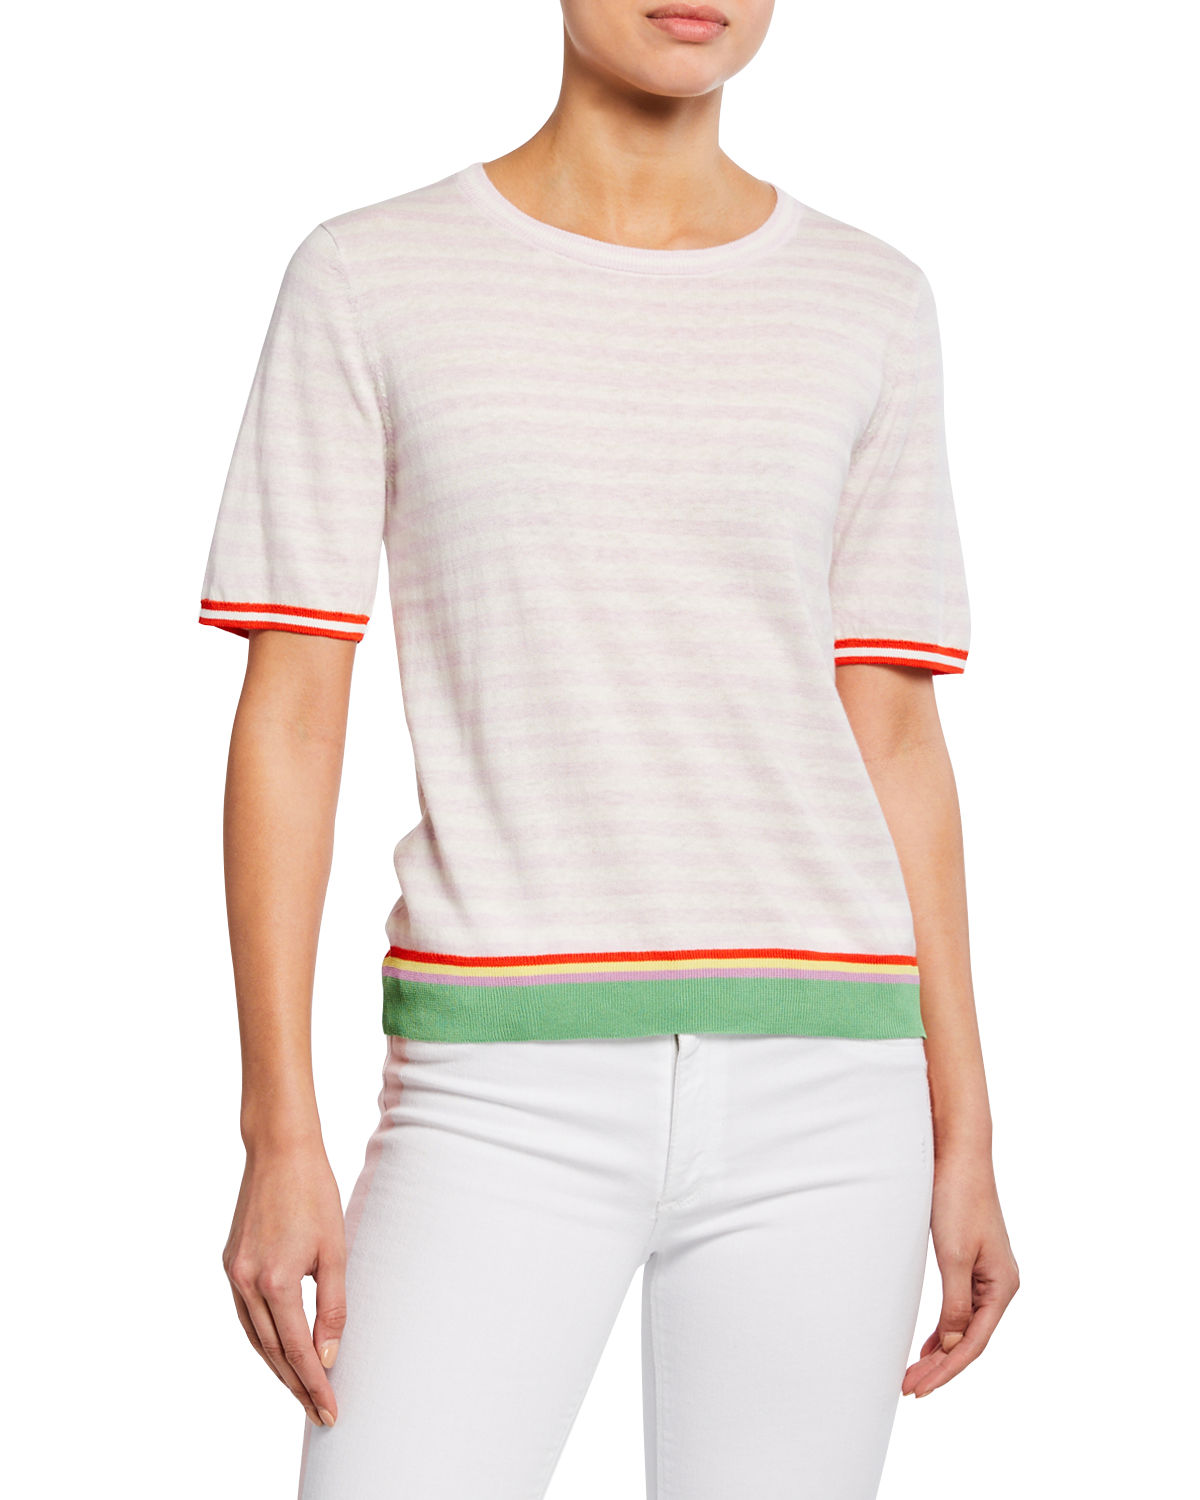 Kule Shorts THE CORINNE STRIPED SHORT-SLEEVE TOP